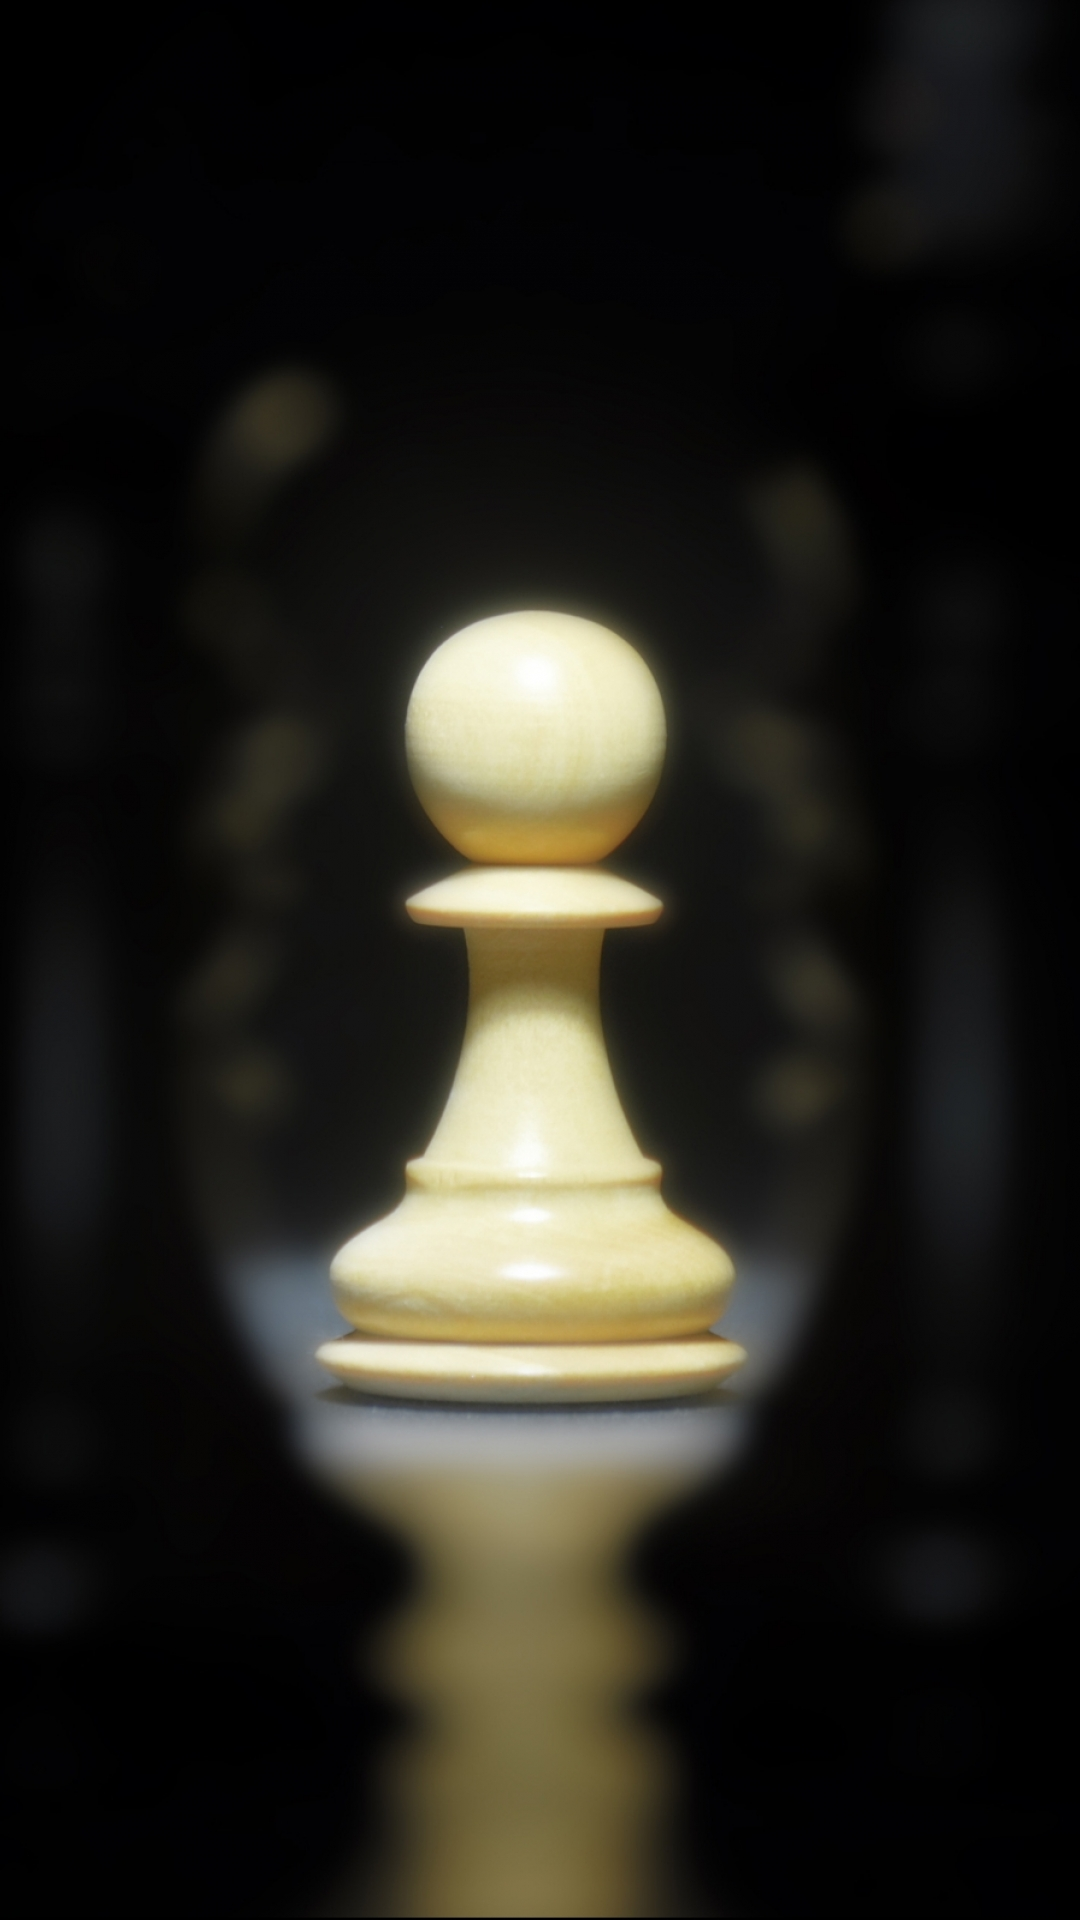 iPhone 6S Plus - Game/Chess - Wallpaper ID: 166285: mobile.alphacoders.com/d_194/wallpaper/166285/Game-Chess-Wallpapers